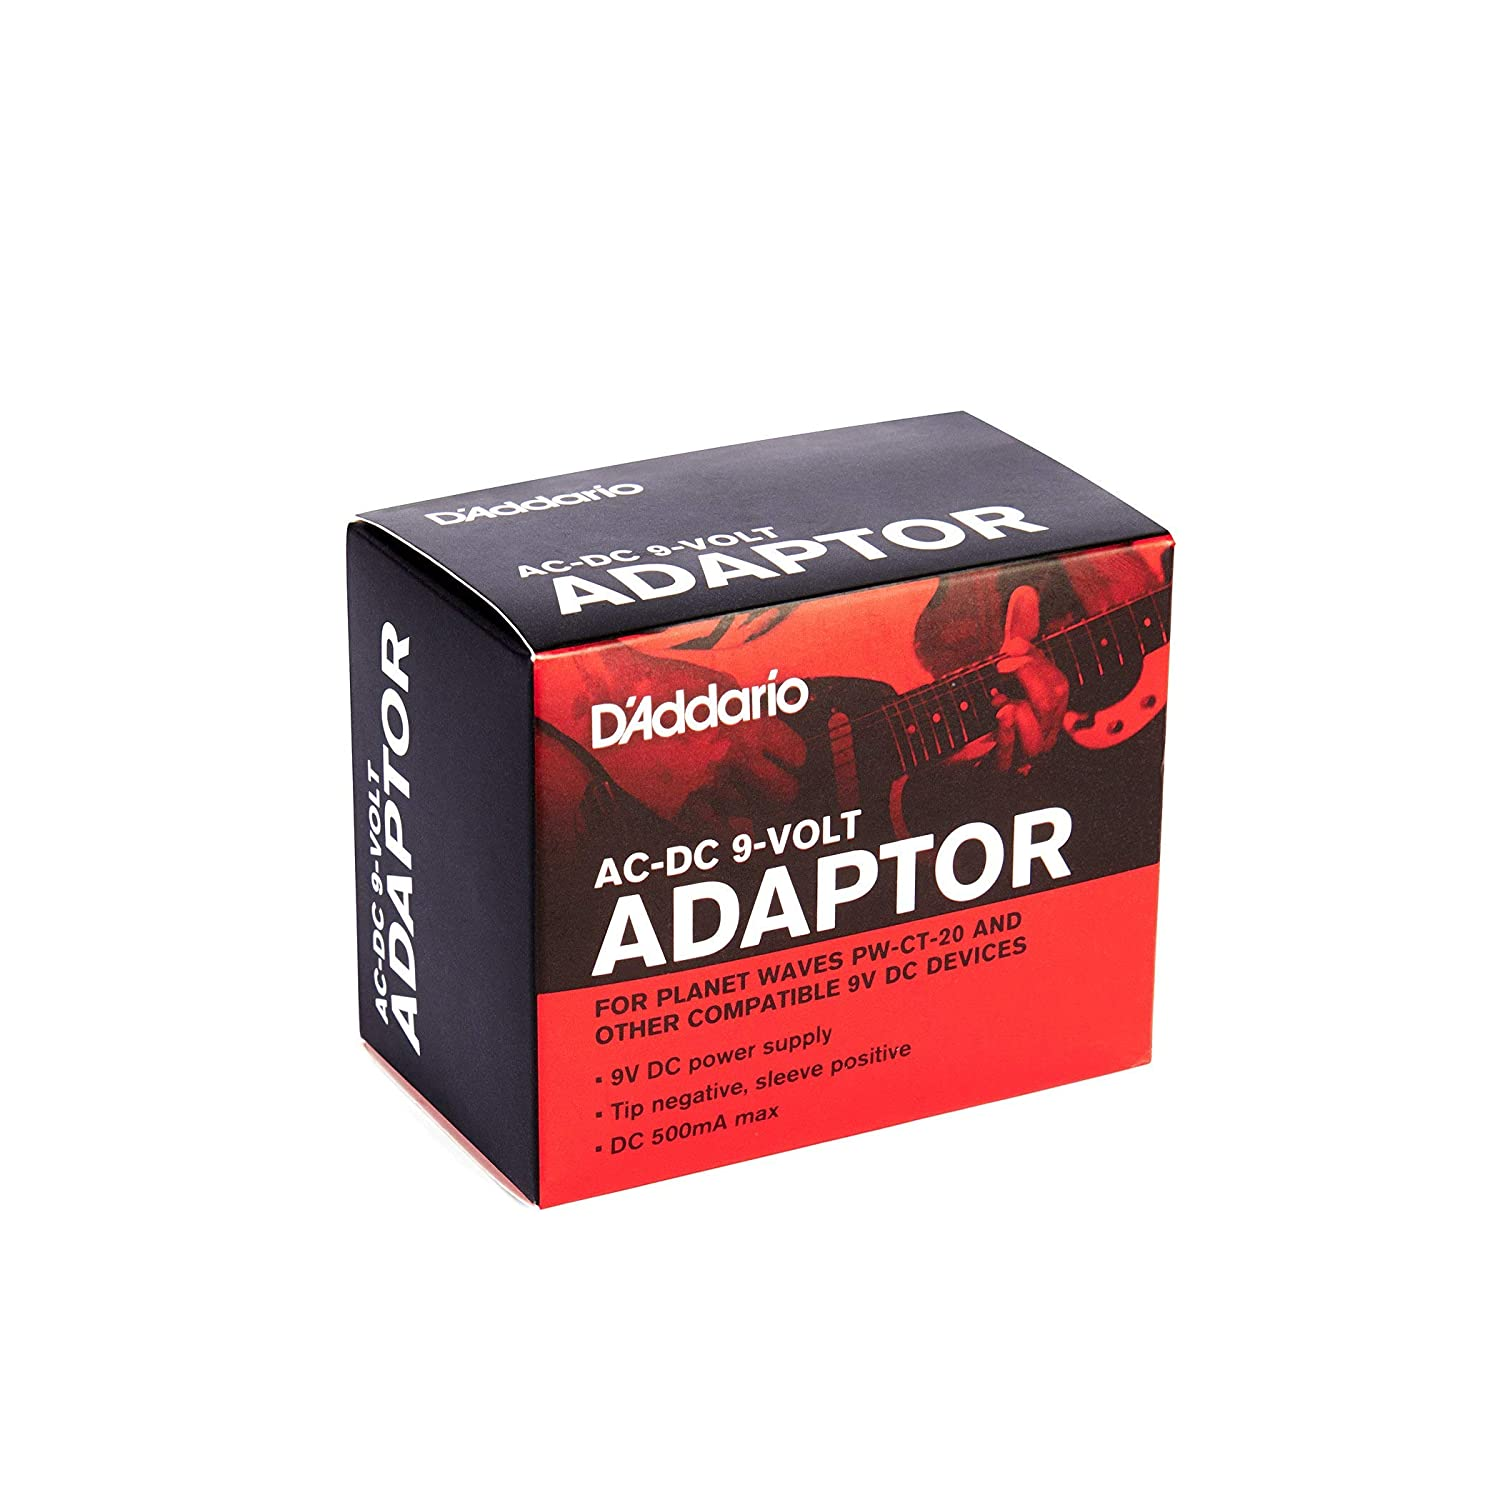 Tip-Negative Renewed Minimize Need to Change Batteries on Pedalboard and Devices Requiring 9V Sleeve-Positive Power Supply DAddario Accessories PW-CT-9V DC Power Adapter 500mA Max Current